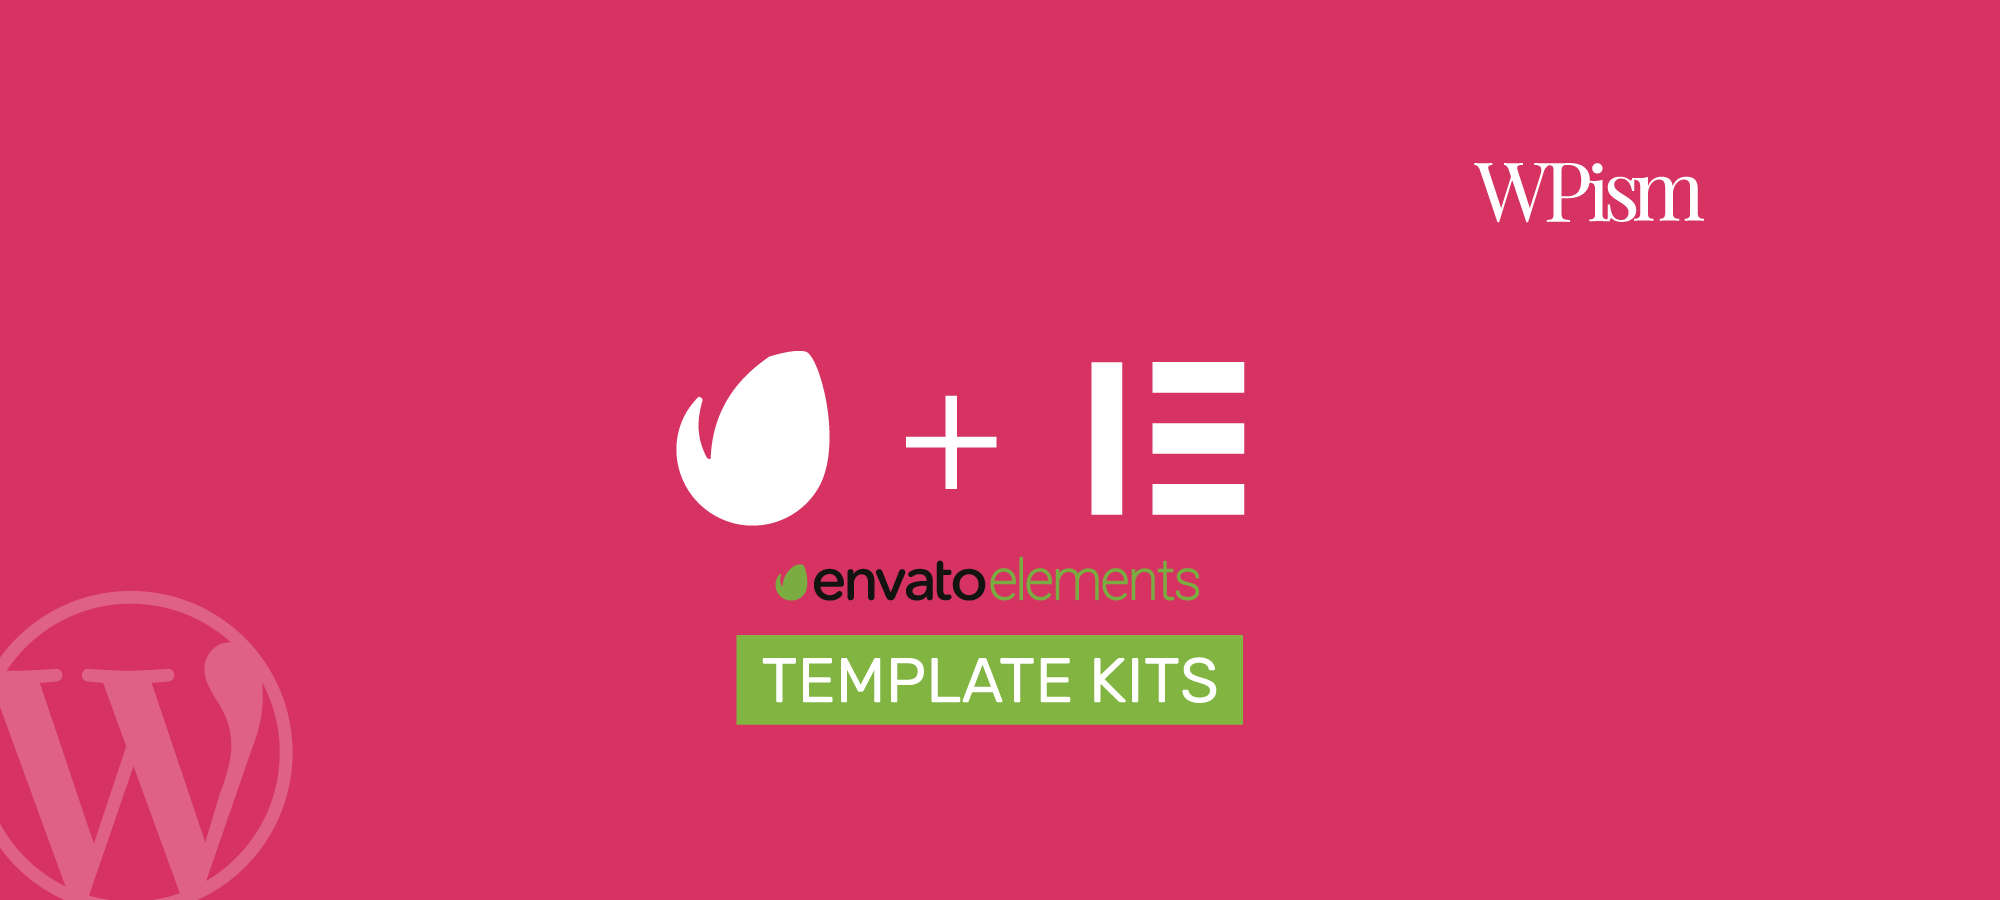 Free Elementor Templates with Envato Elements Plugin